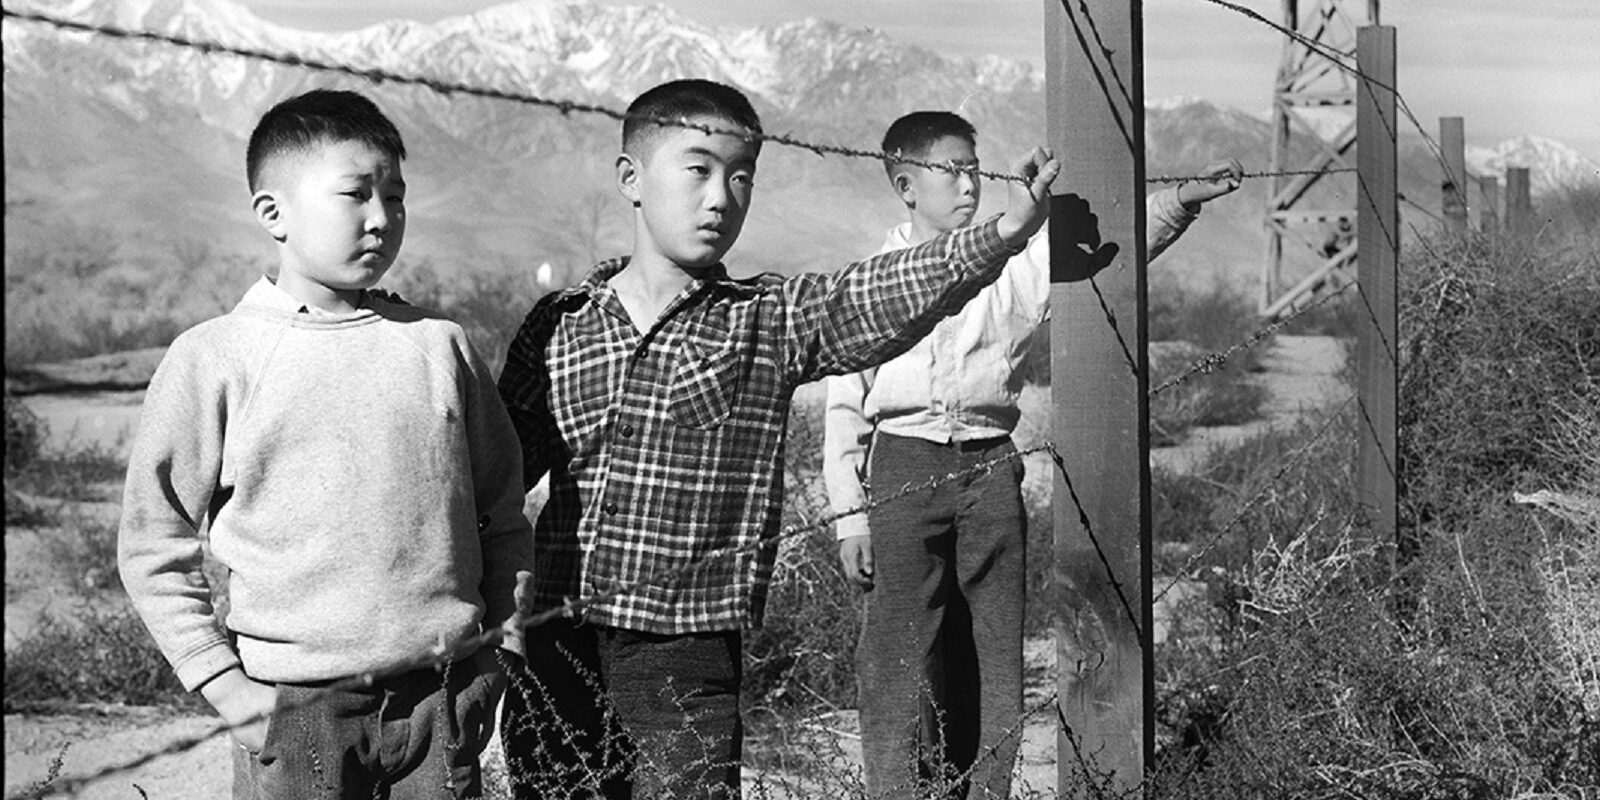 The Three Boys Behind Barbed Wire (Year unknown)